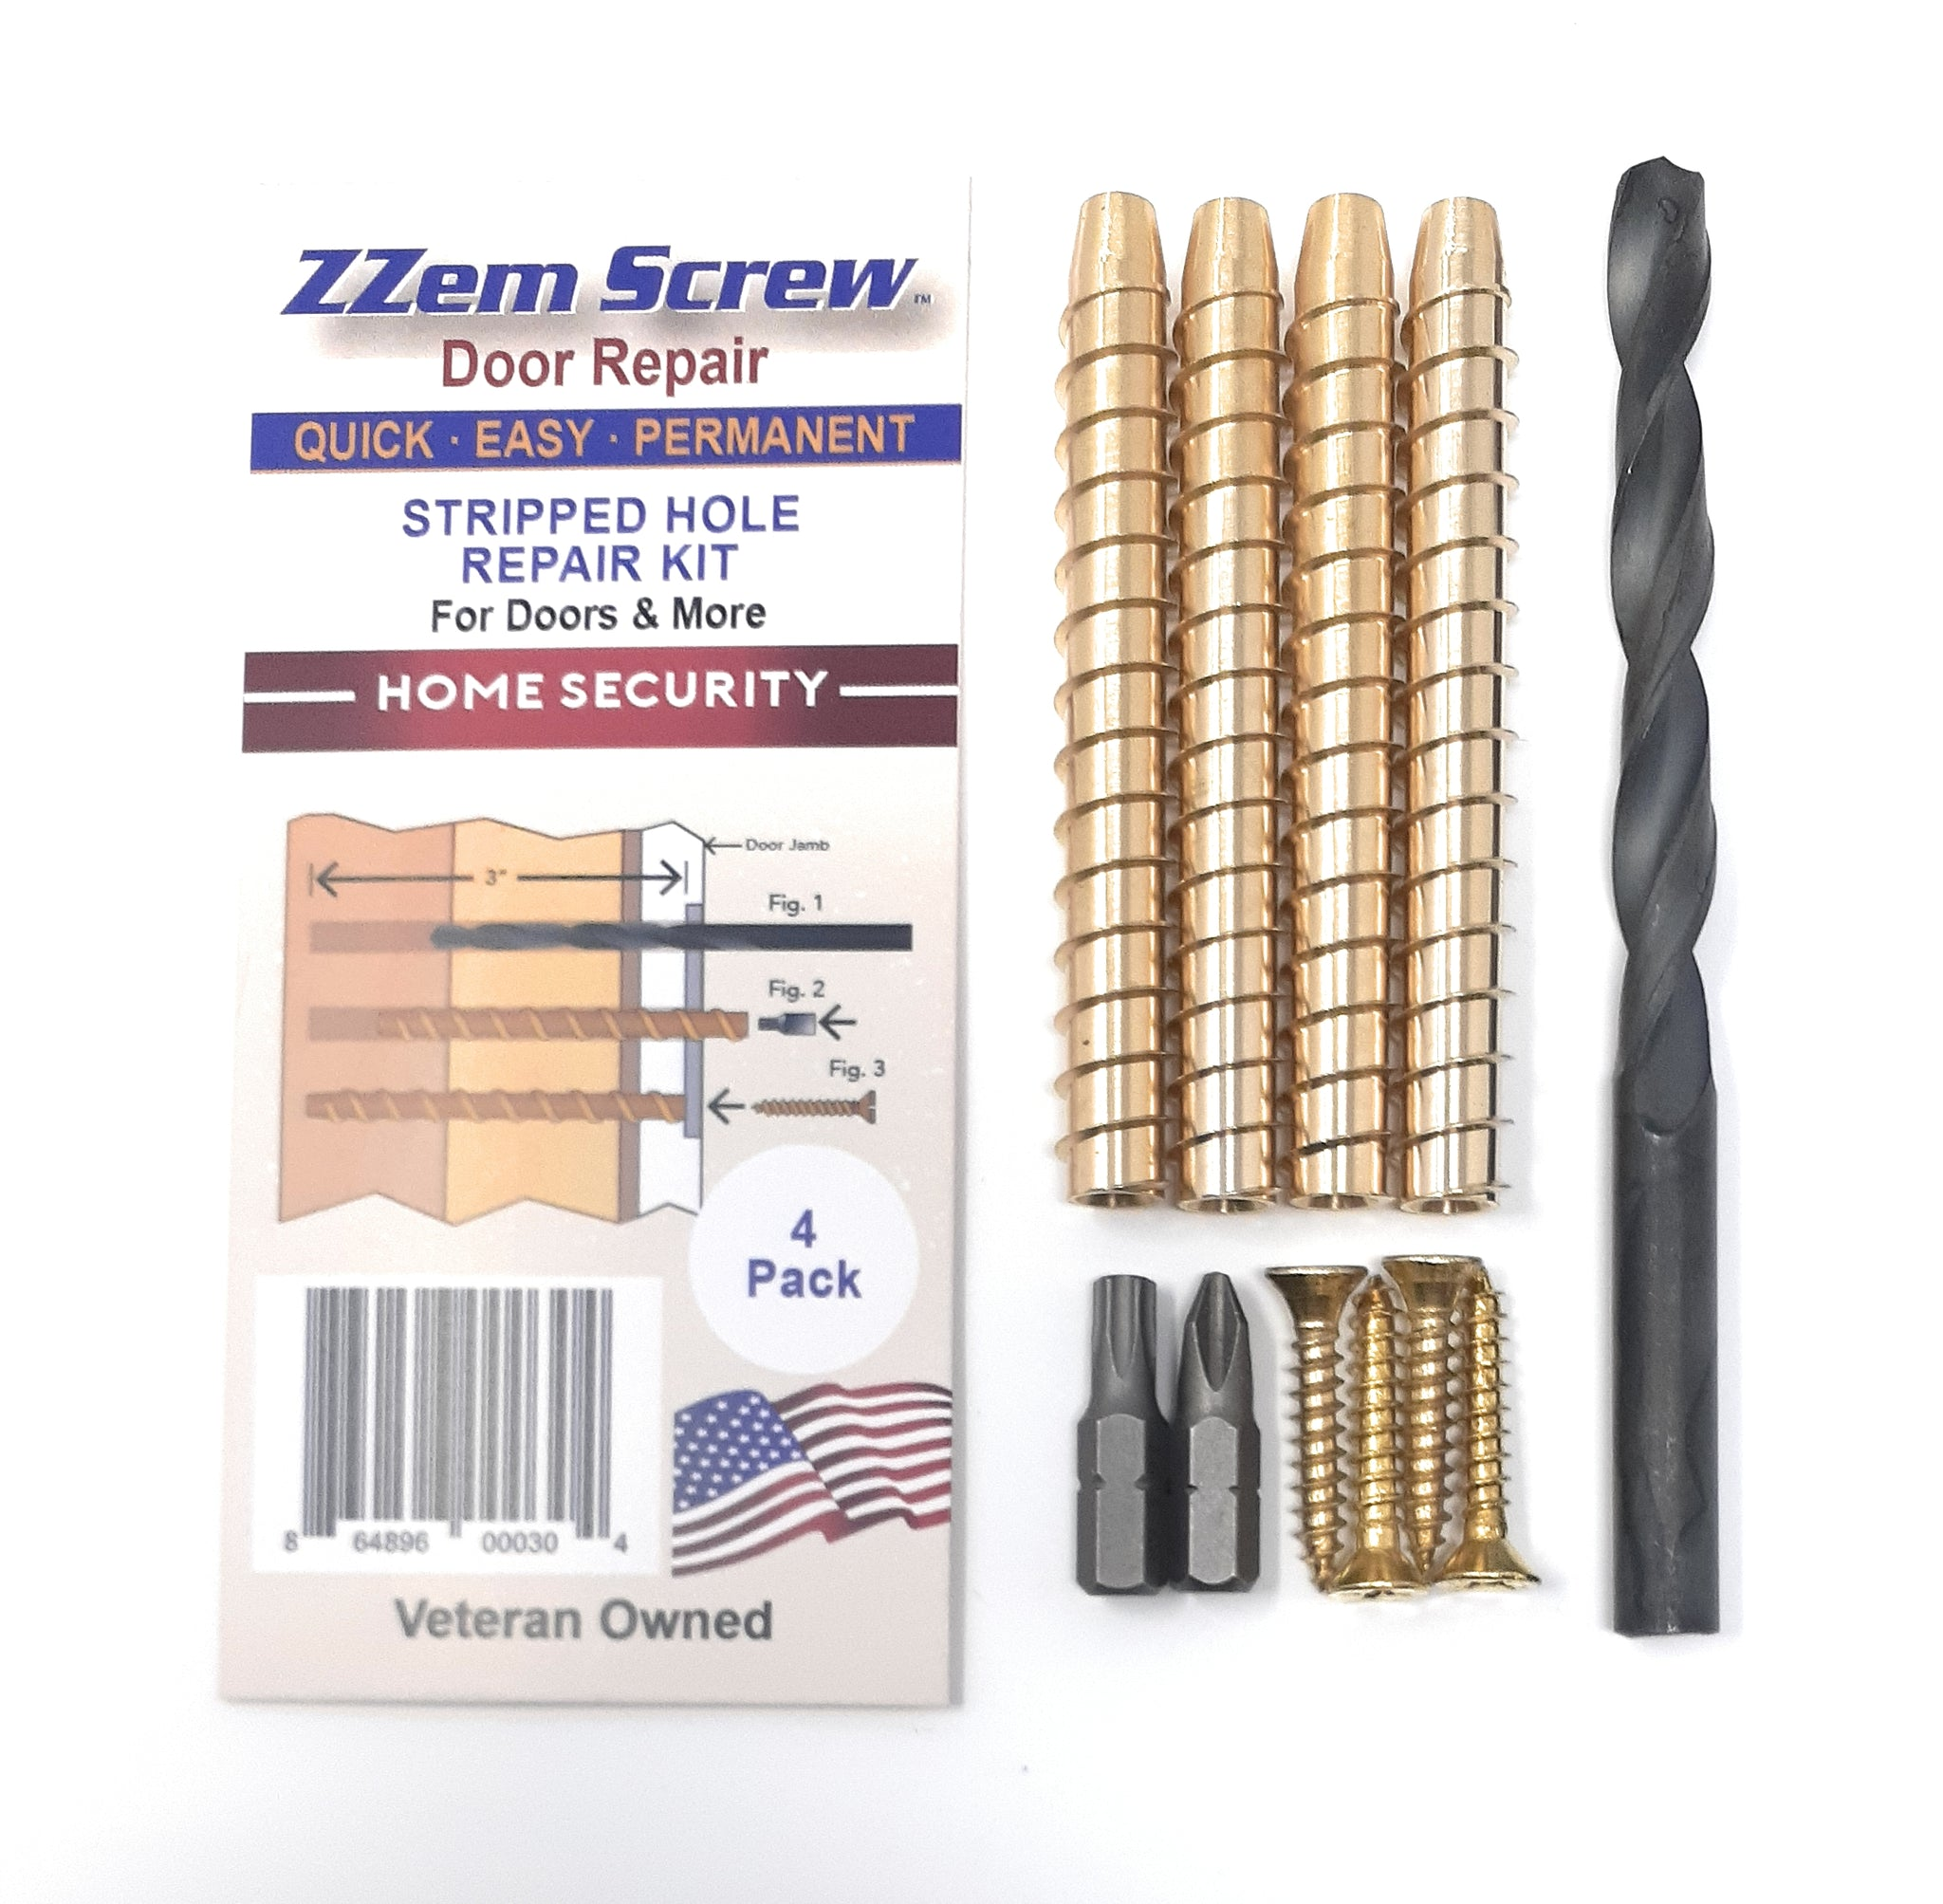 Stripped Screw Repair In Minutes....Permanently! By ZZem Screw